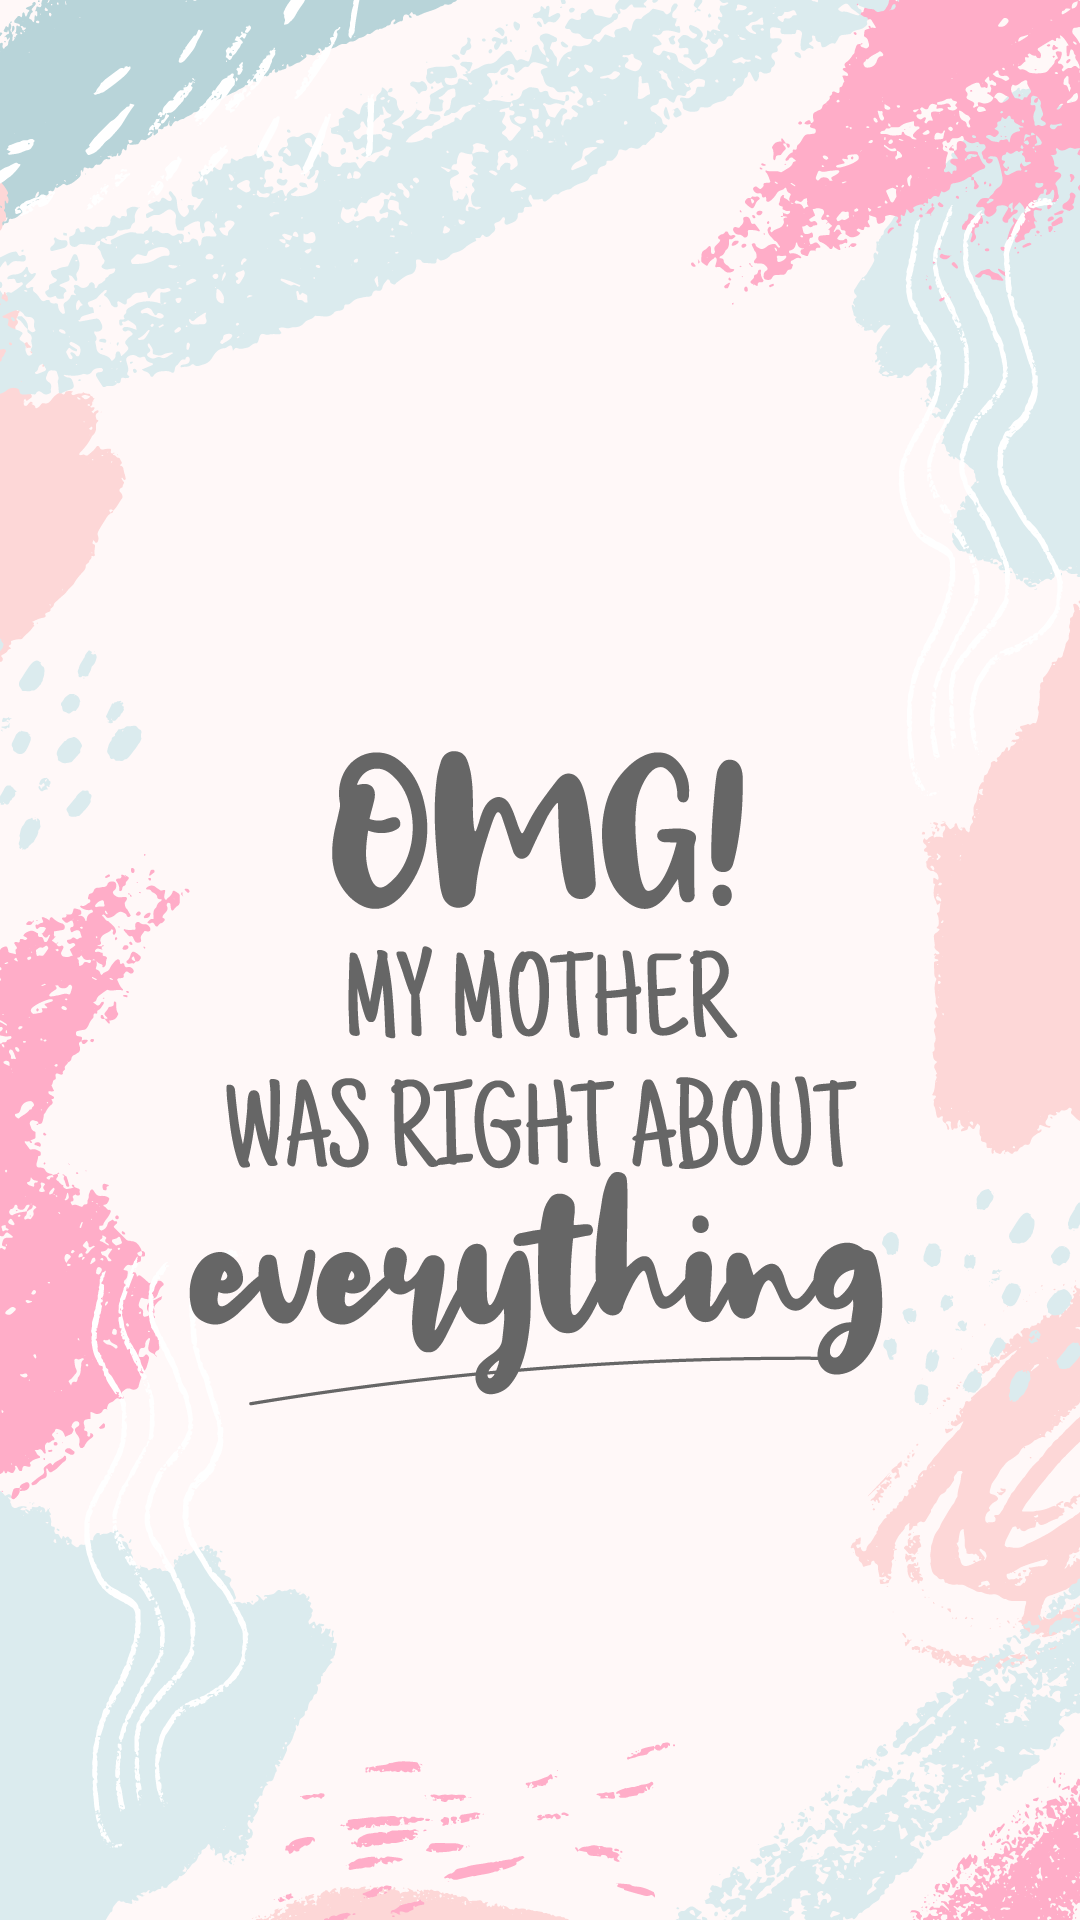 """Mom wallpaper: """"OMG! My mother was right about everything!"""""""